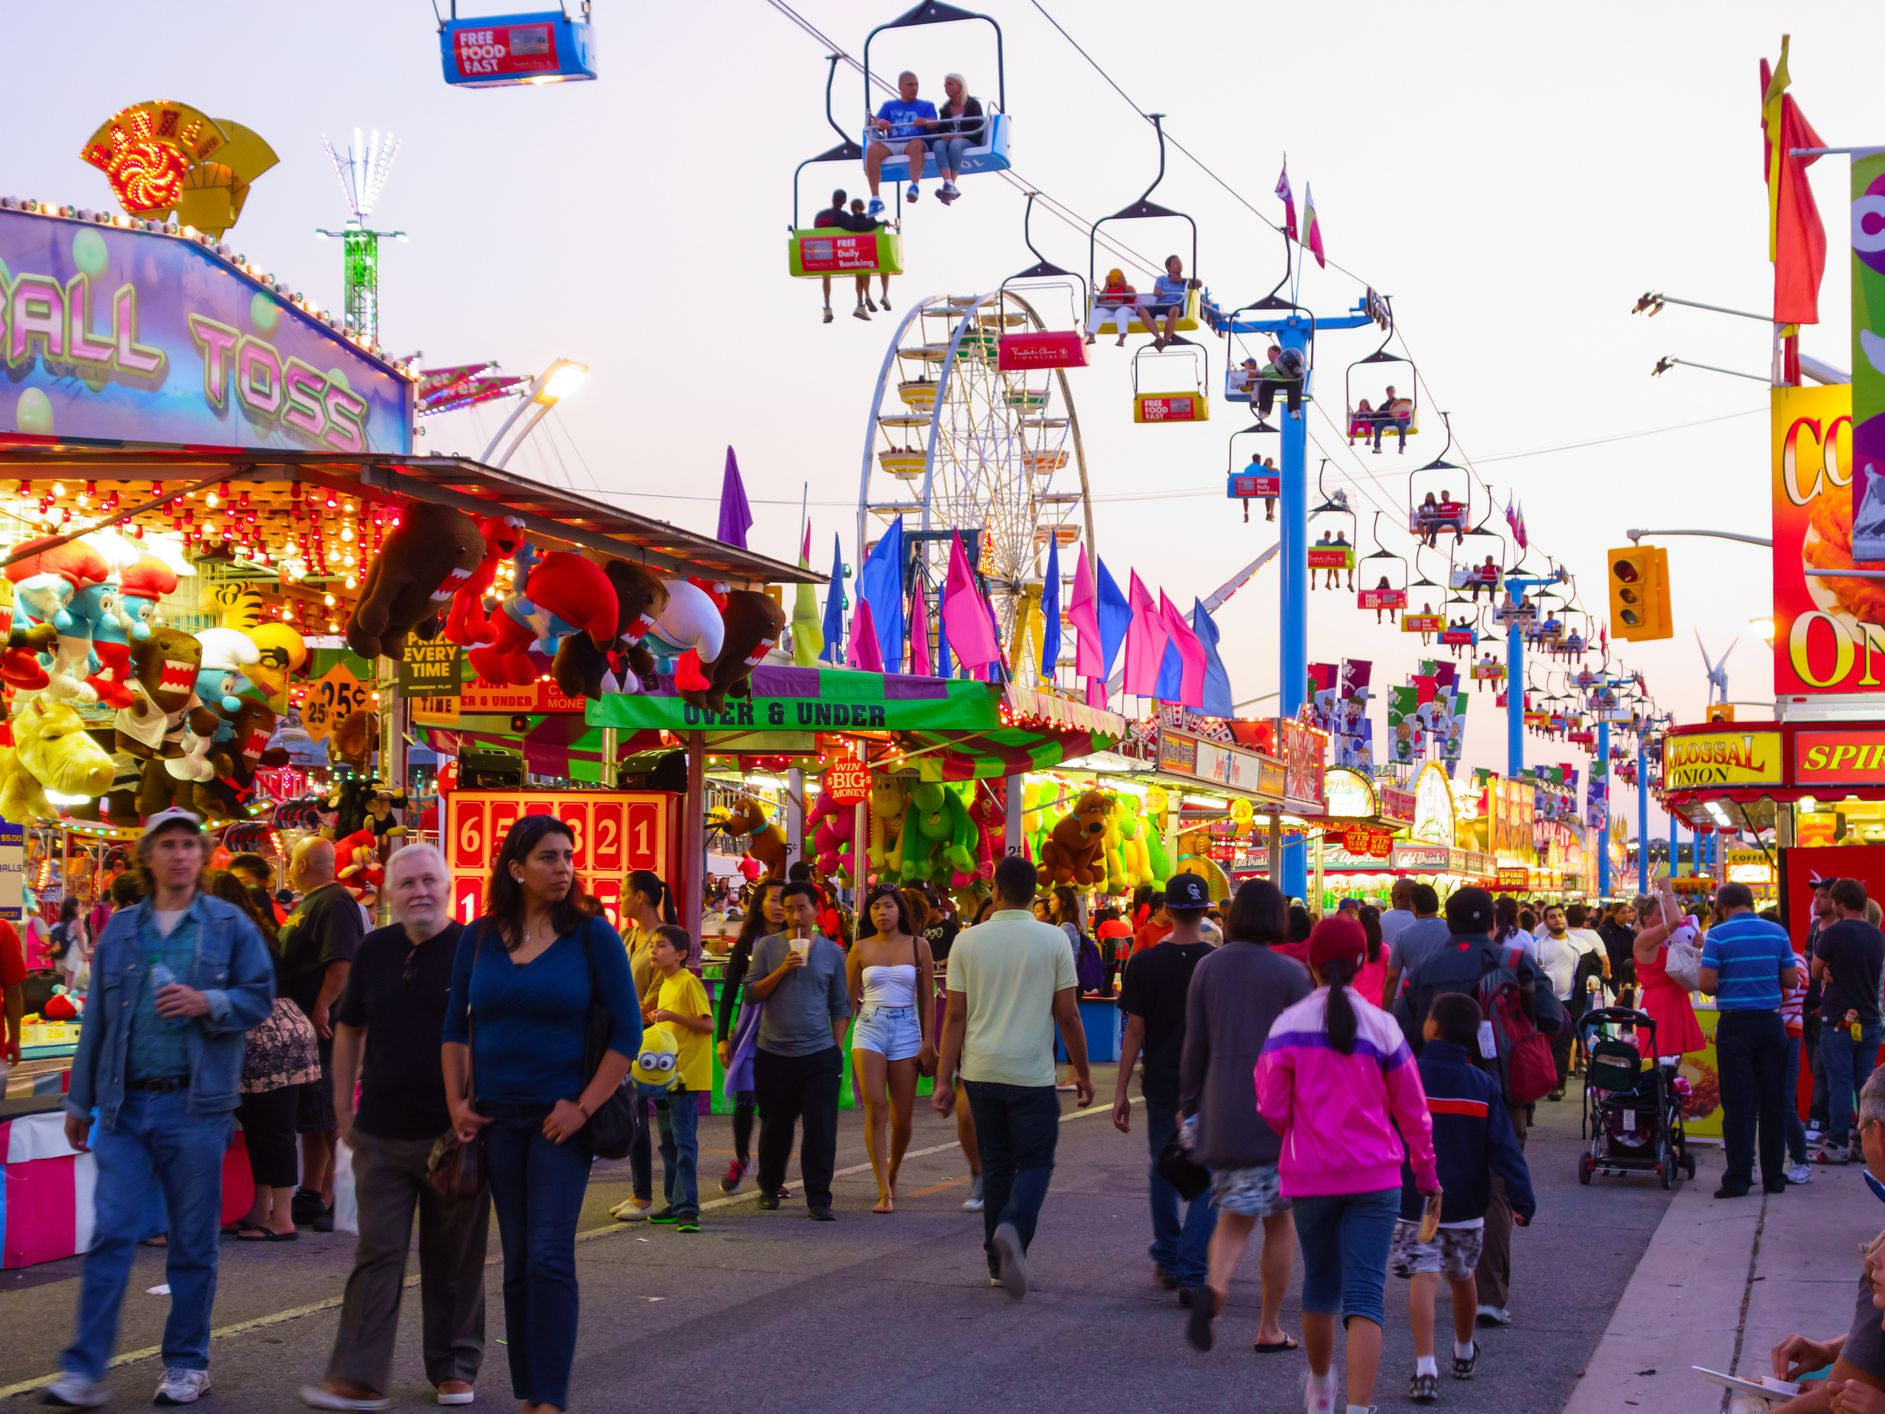 Canadian National Exhibition: The Complete Guide